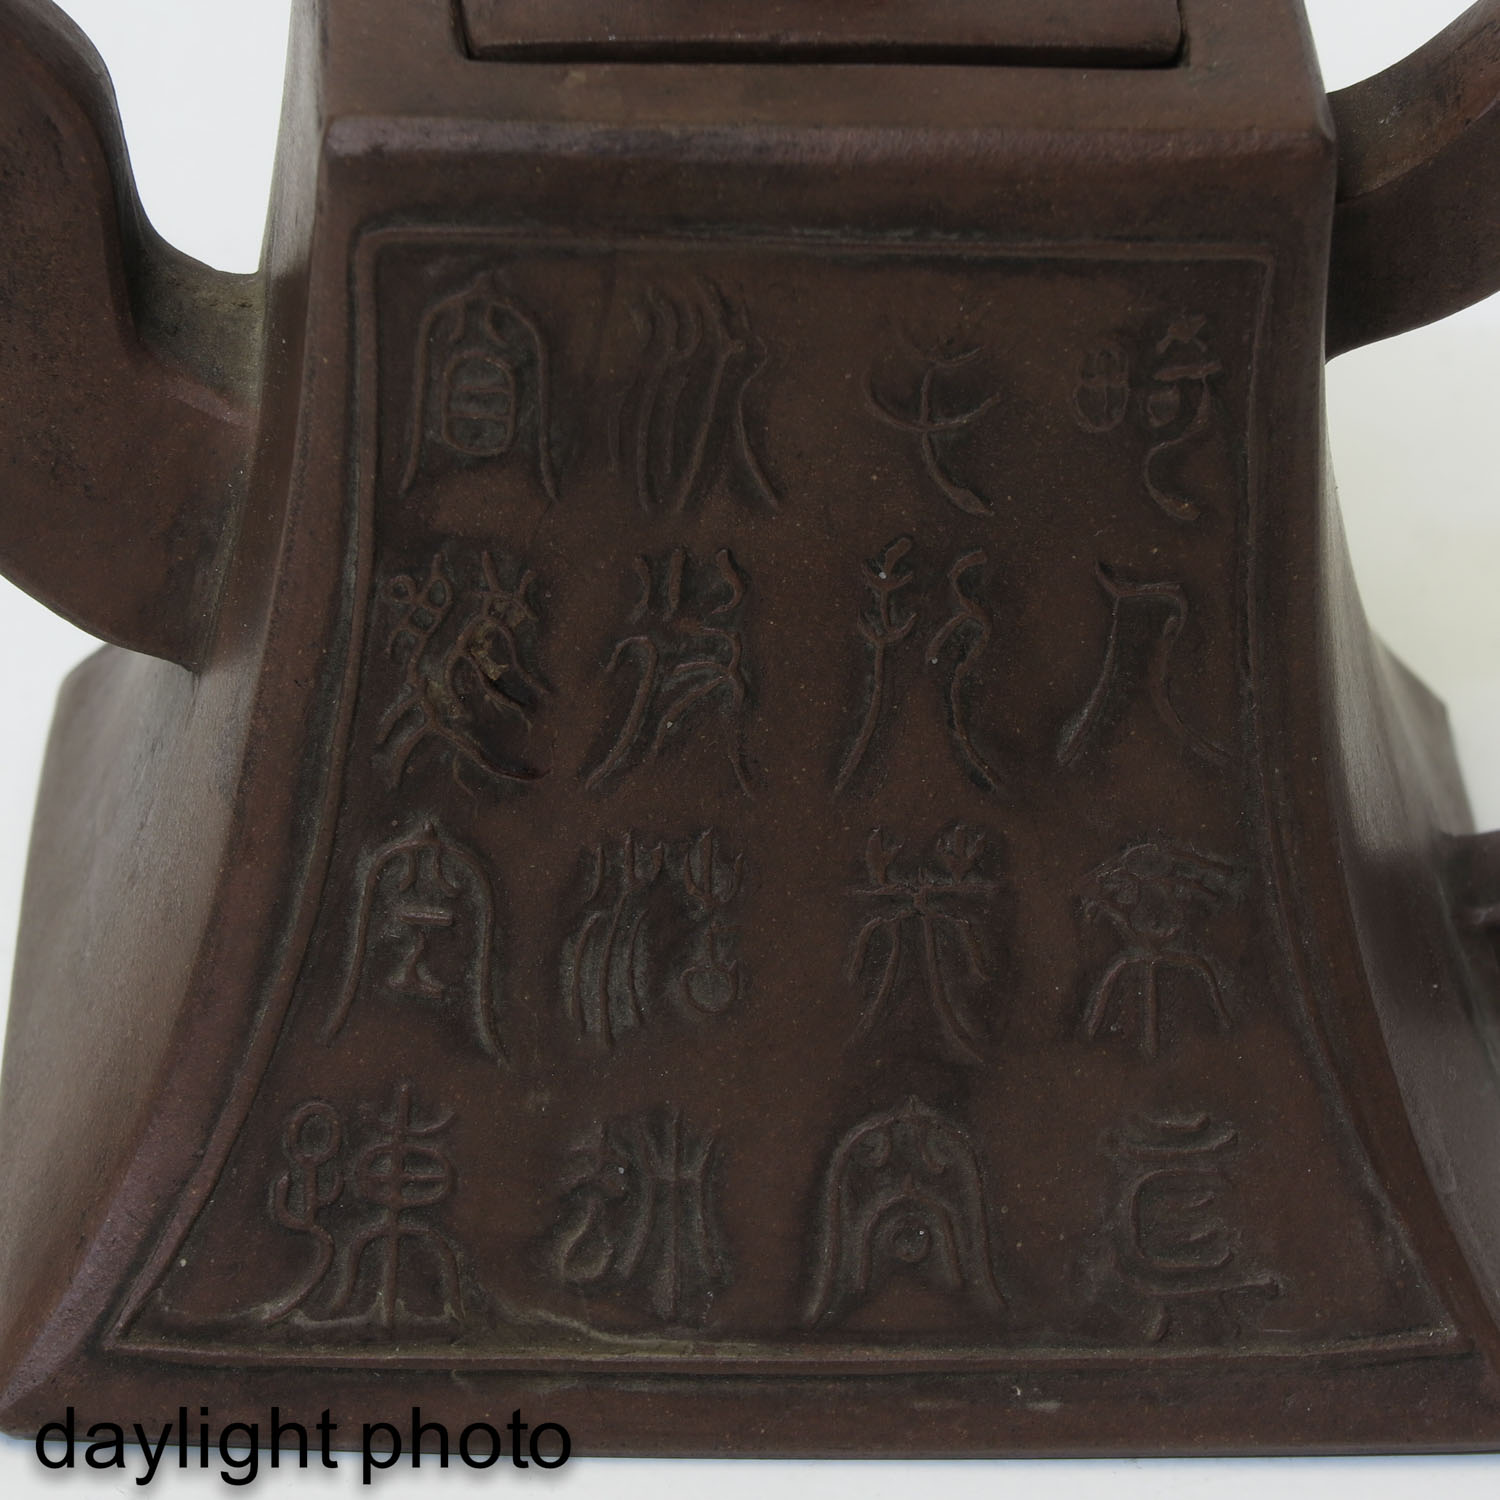 A Lot of 2 Yixing Teapots - Image 10 of 10